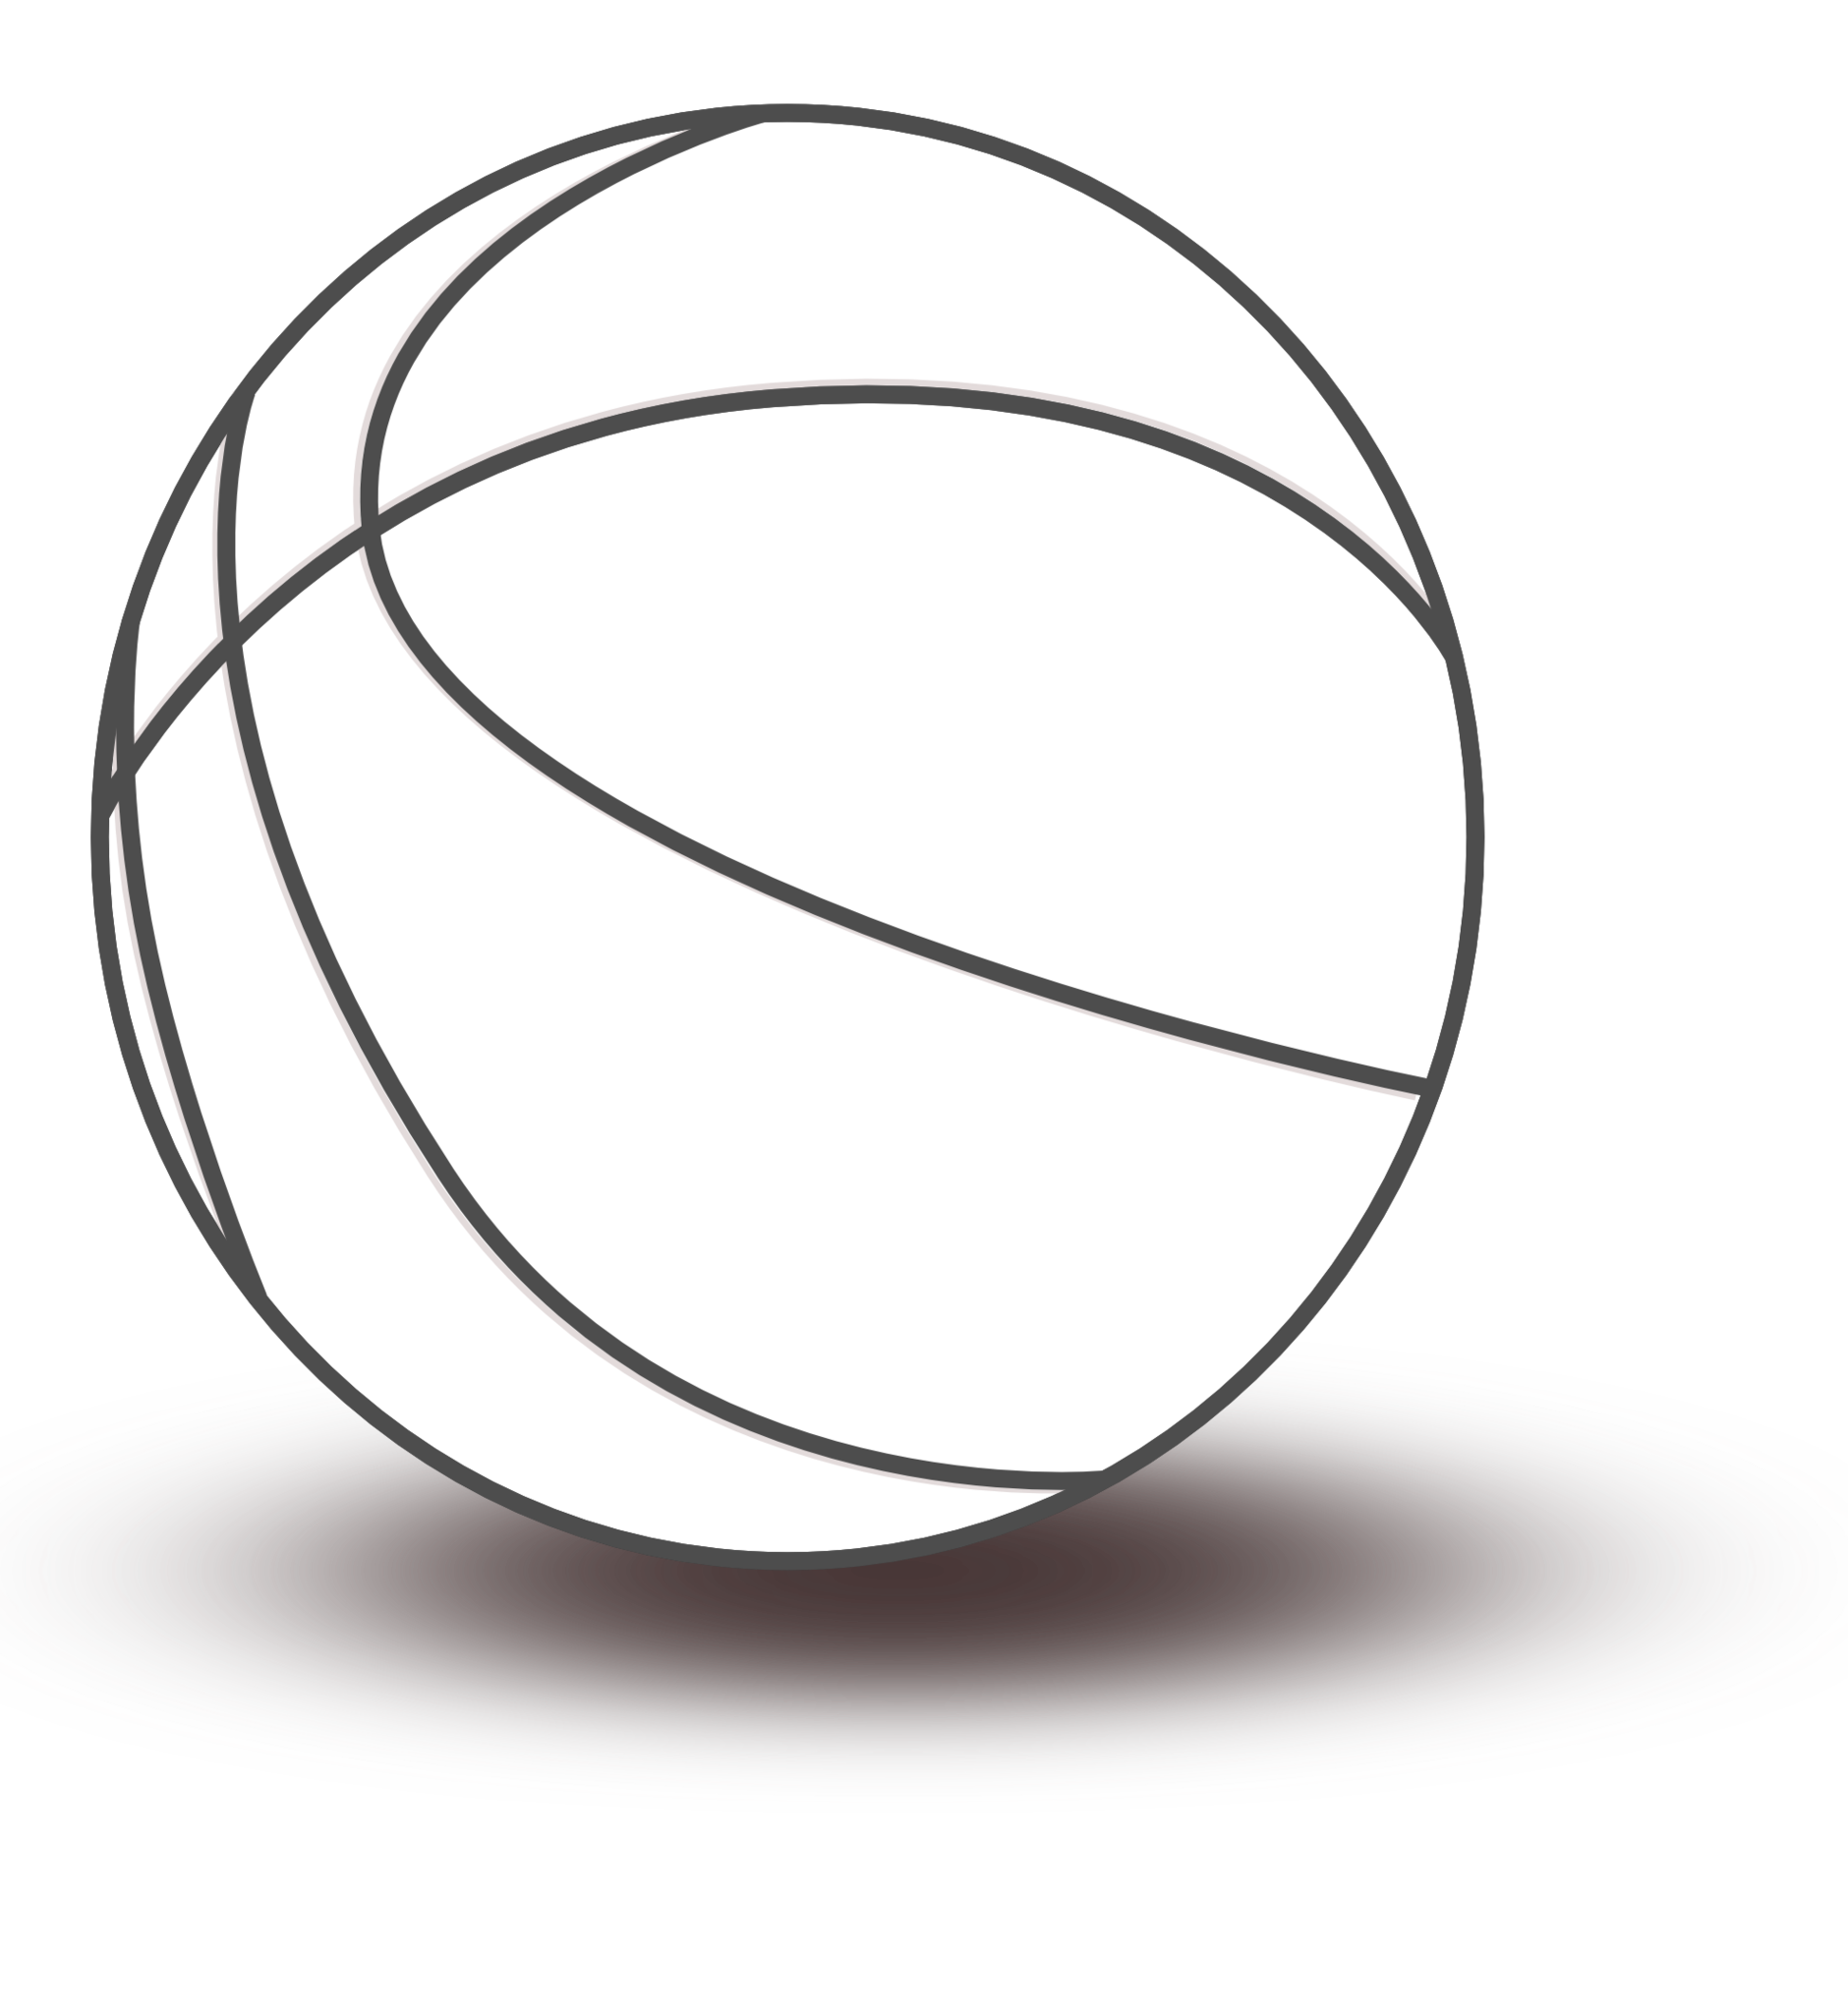 Black And White Images Basketball.